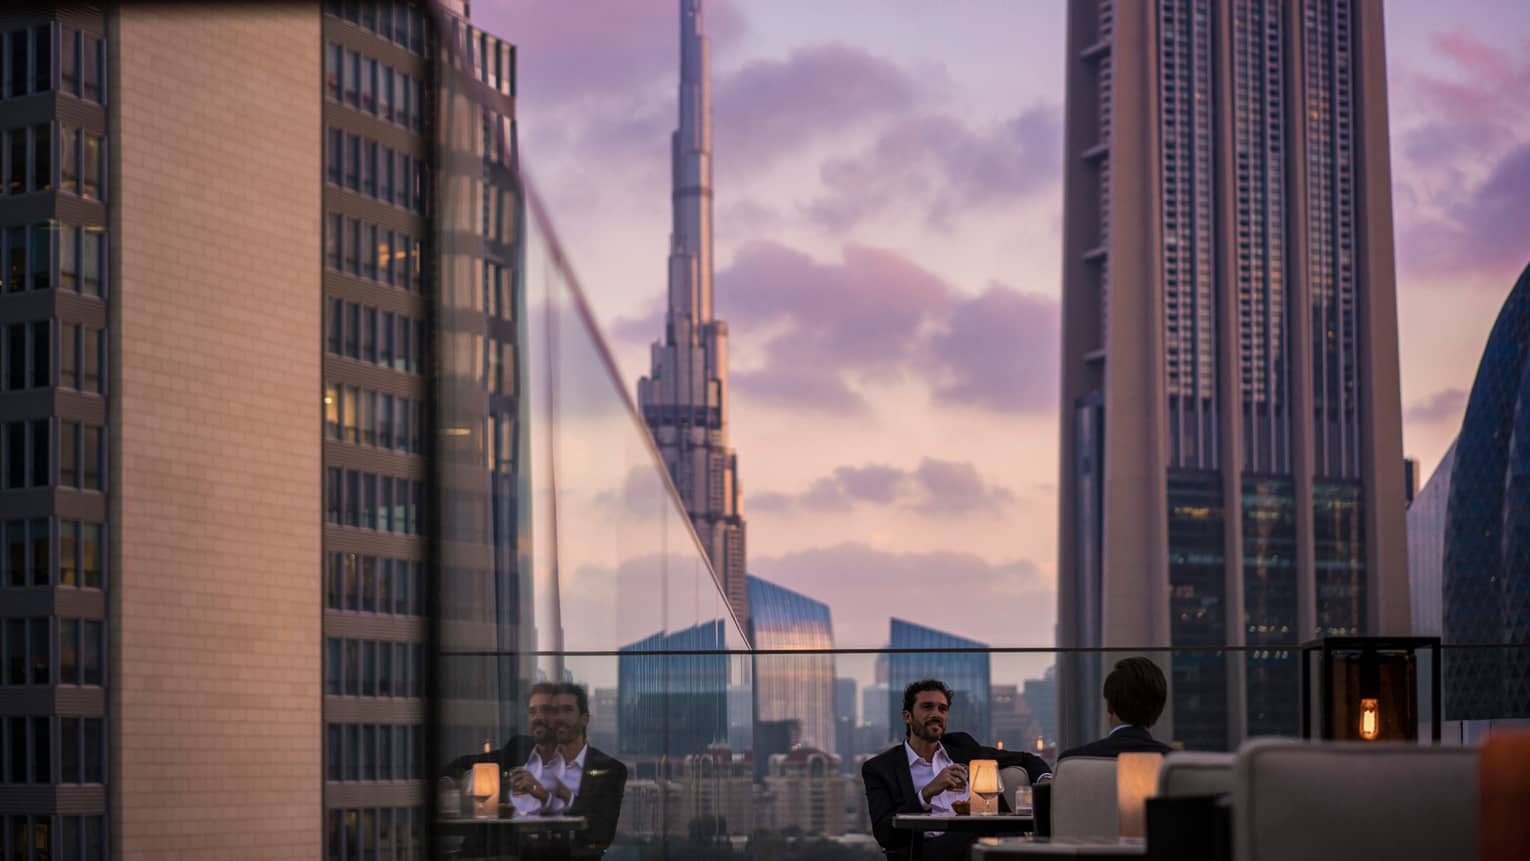 Men in suits on rooftop patio in front of glass balcony wall overlooking city at sunset